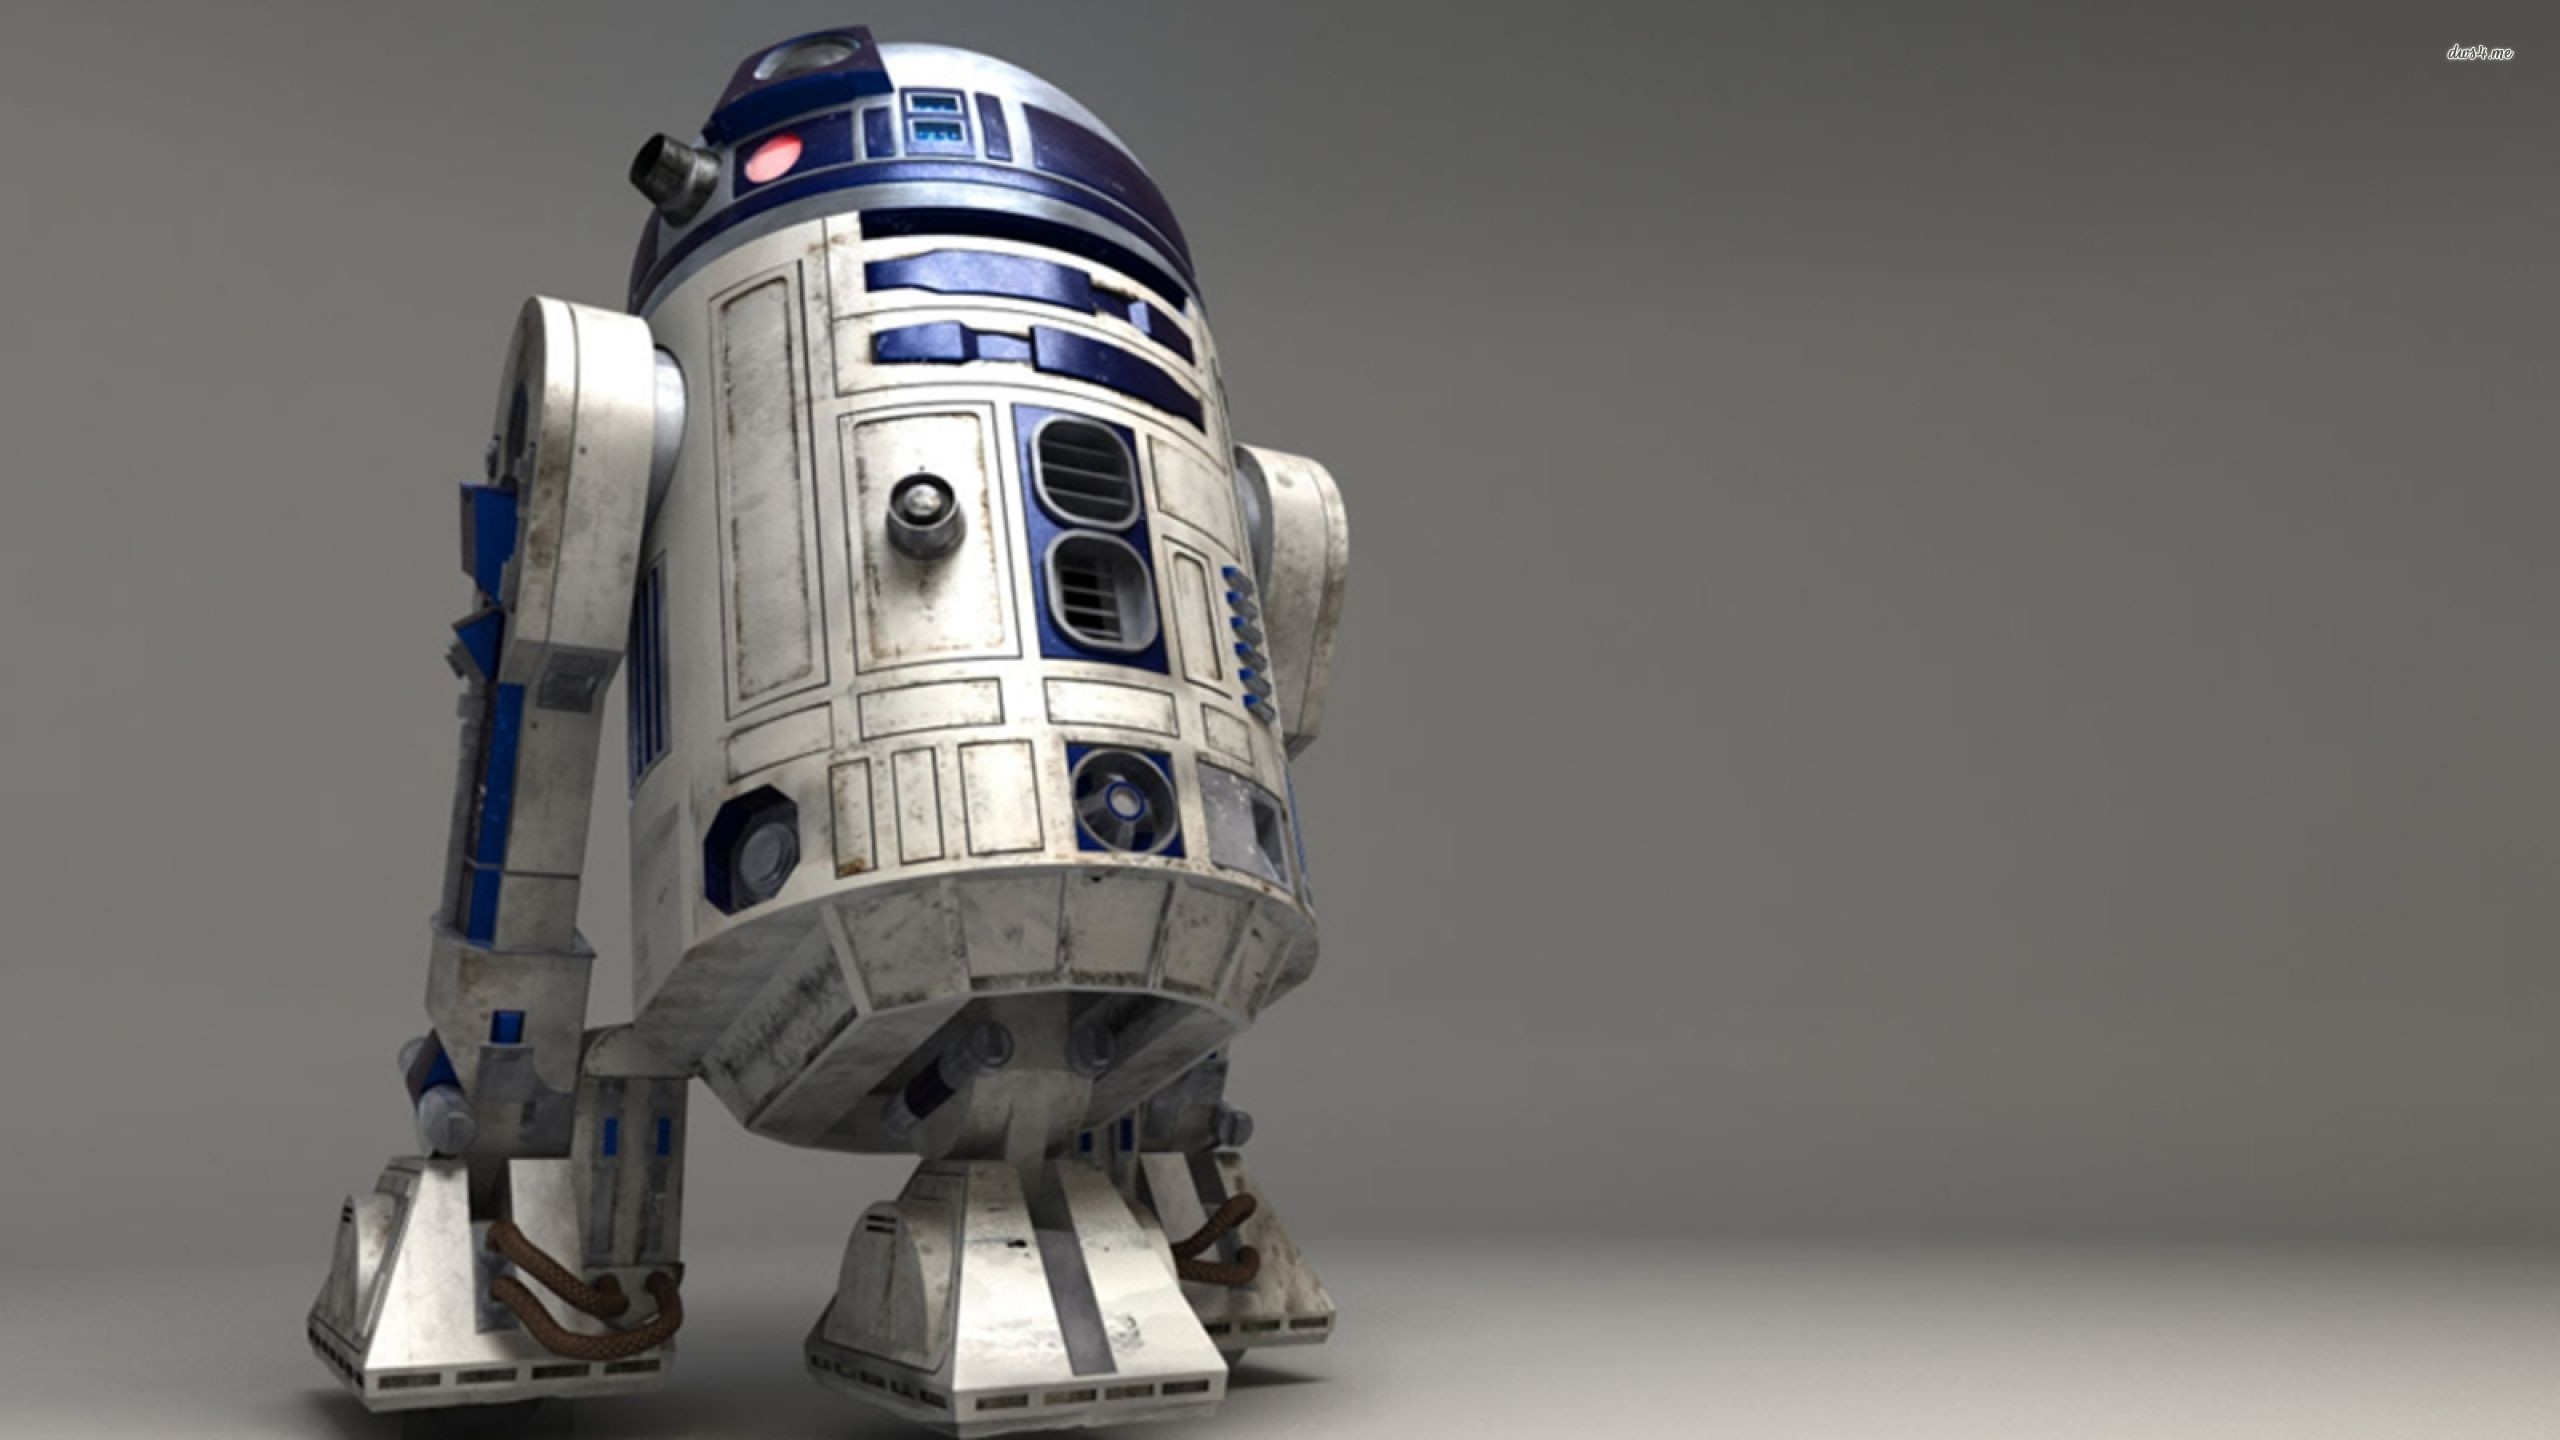 2560x1440 R2d2 Wallpapers HD Free